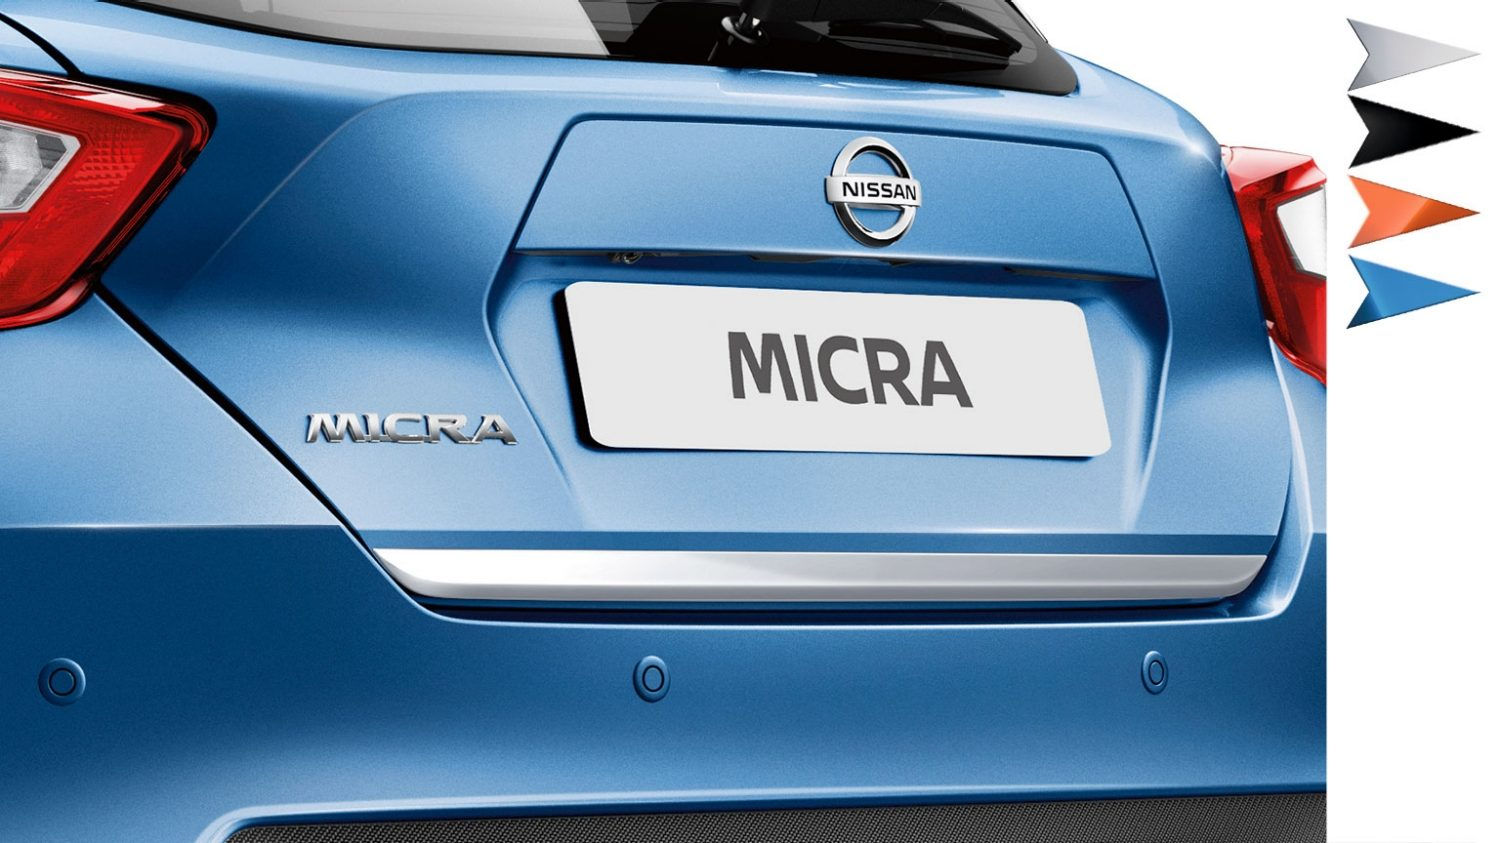 Nissan Micra Design Studio Trunk Lower Finisher